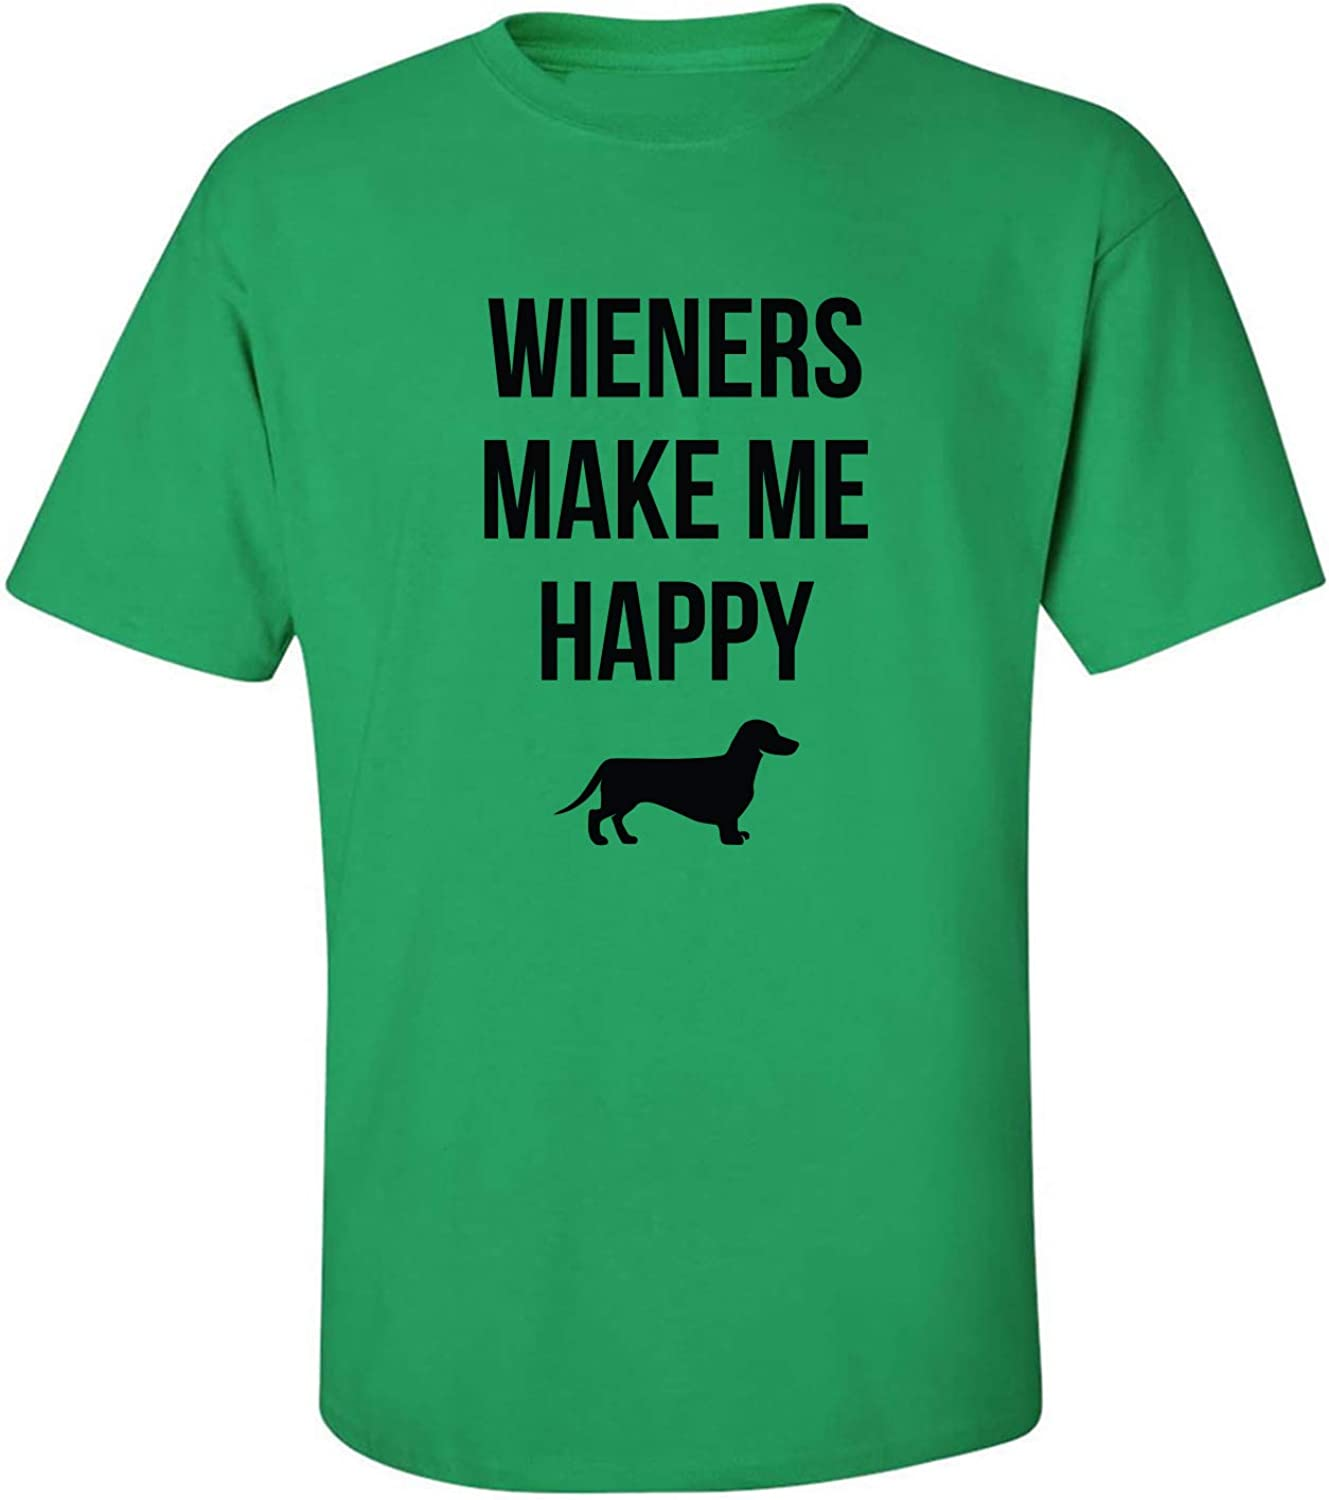 Wieners Make Me Happy Adult T-Shirt in Kelly Green - XXXX-Large